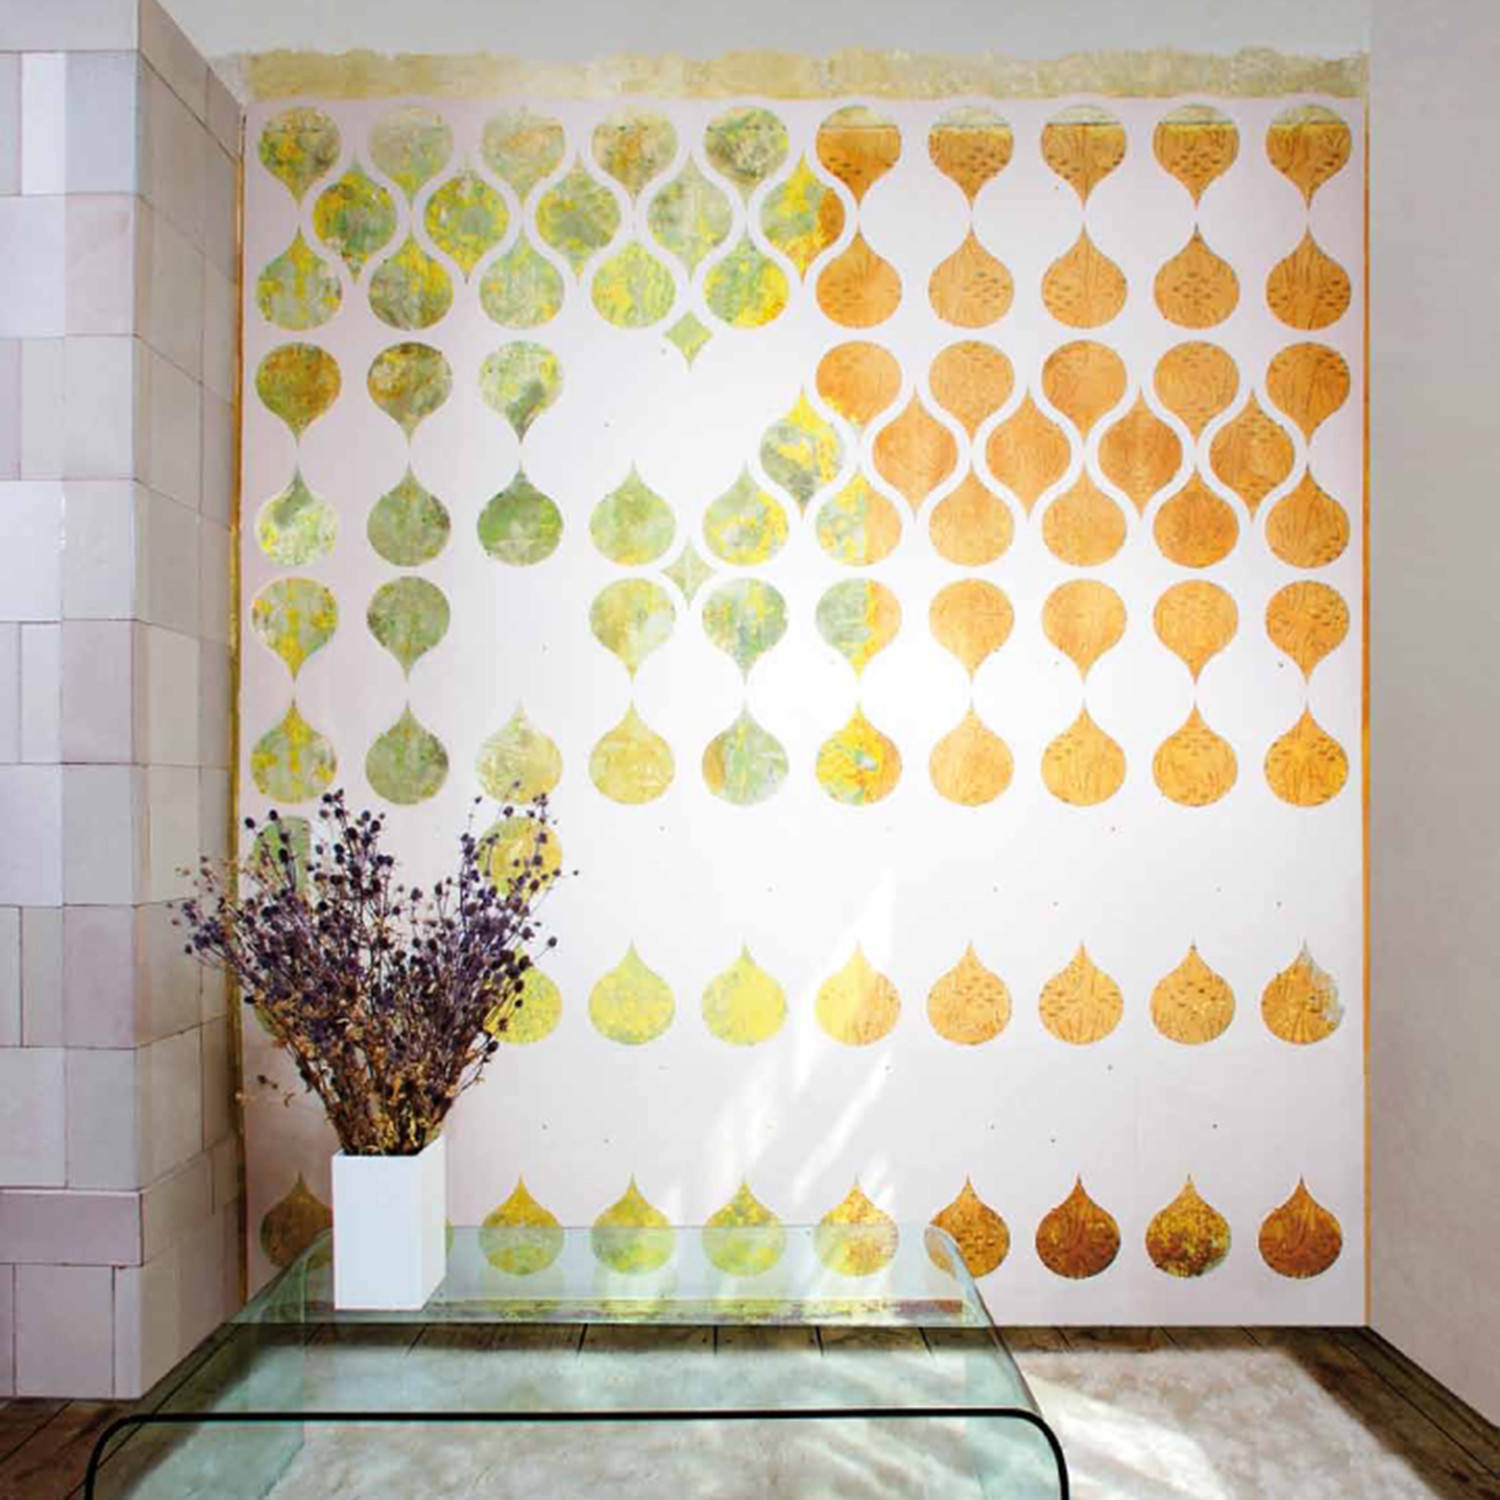 Tear away wallpaper 6 sheets white movisi touch for Wallpaper sheets